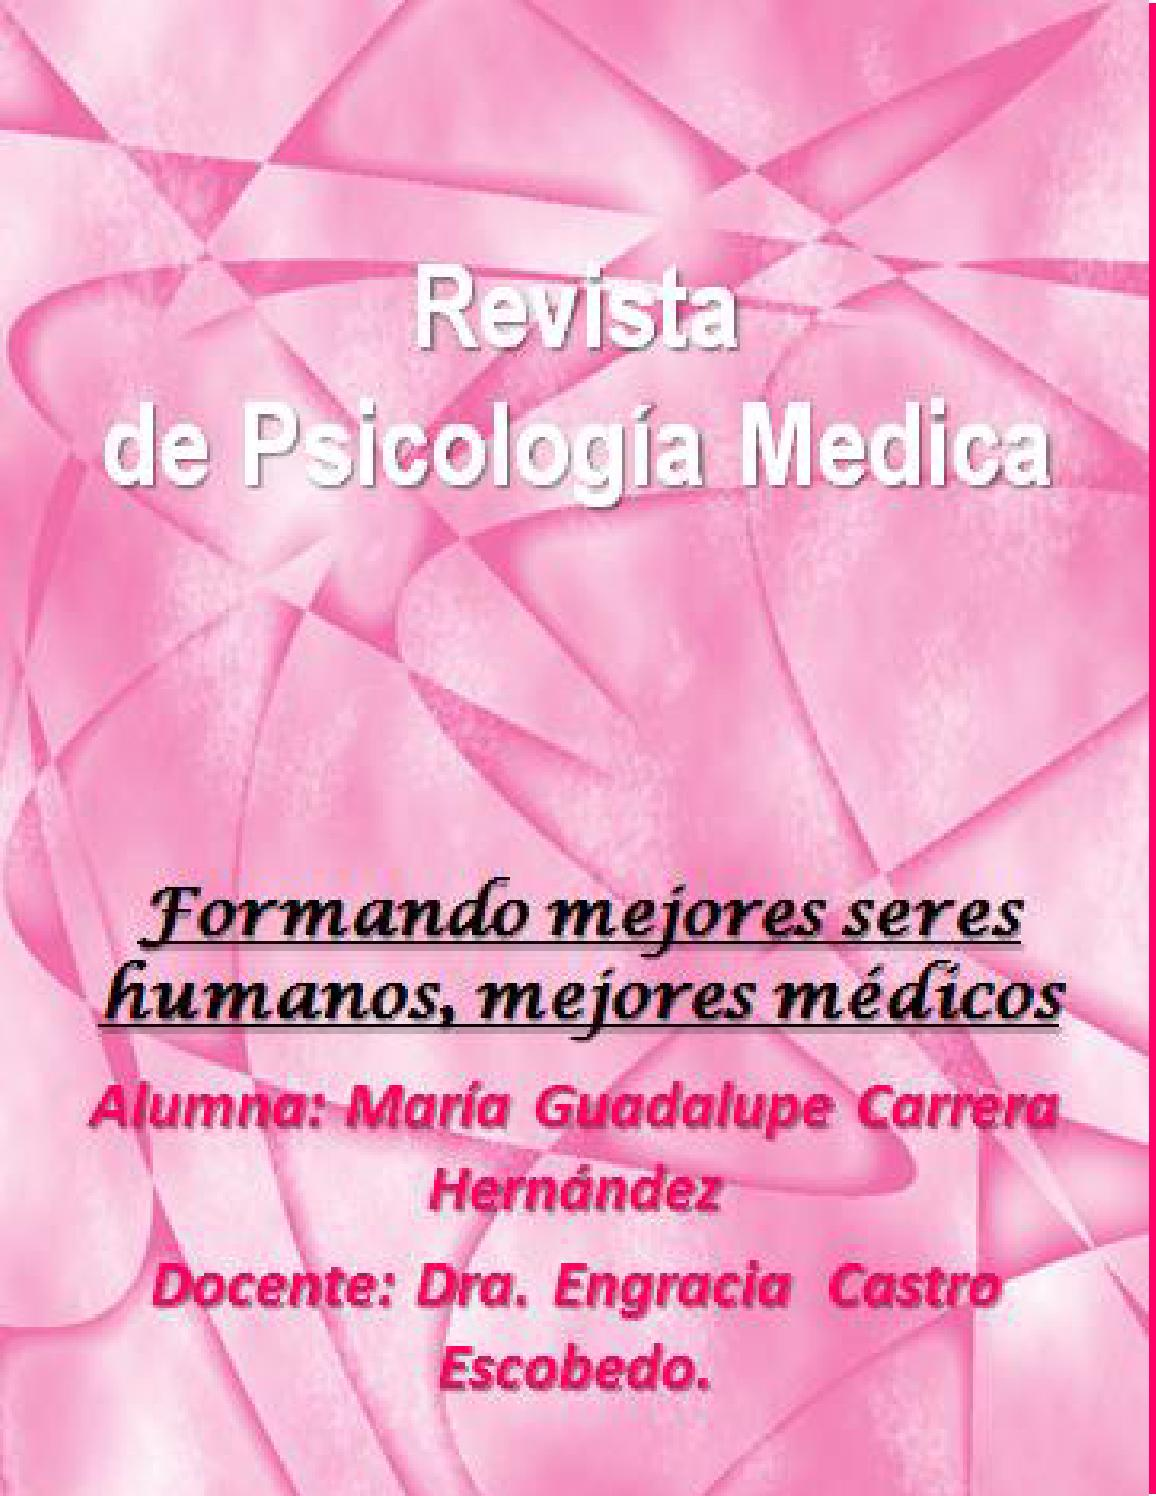 María guadalupe carrera hernández by Psico Med - issuu